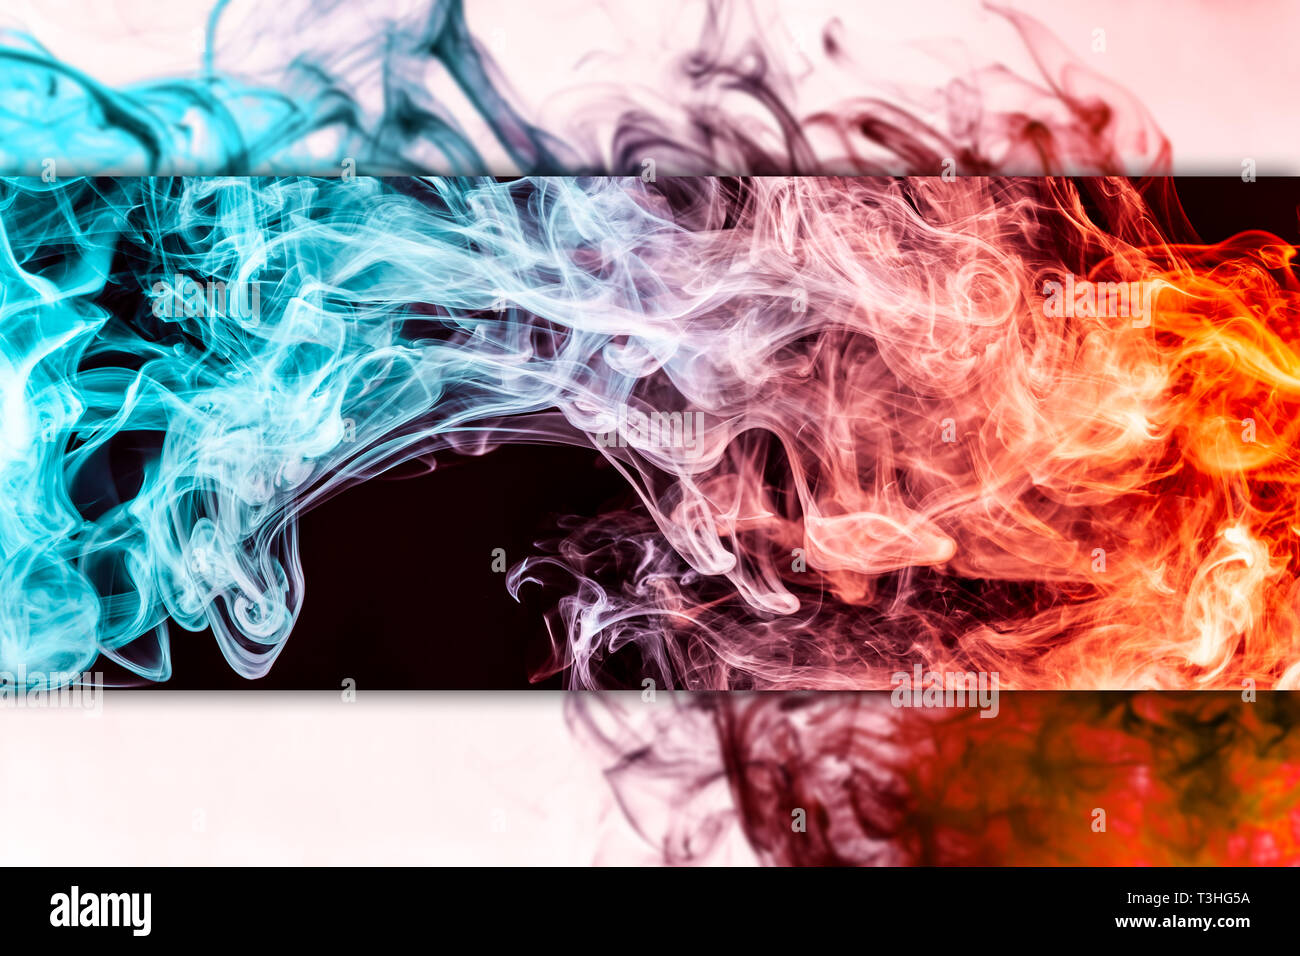 Frozen Abstract Movement Of Explosion Red And Blue Smoke